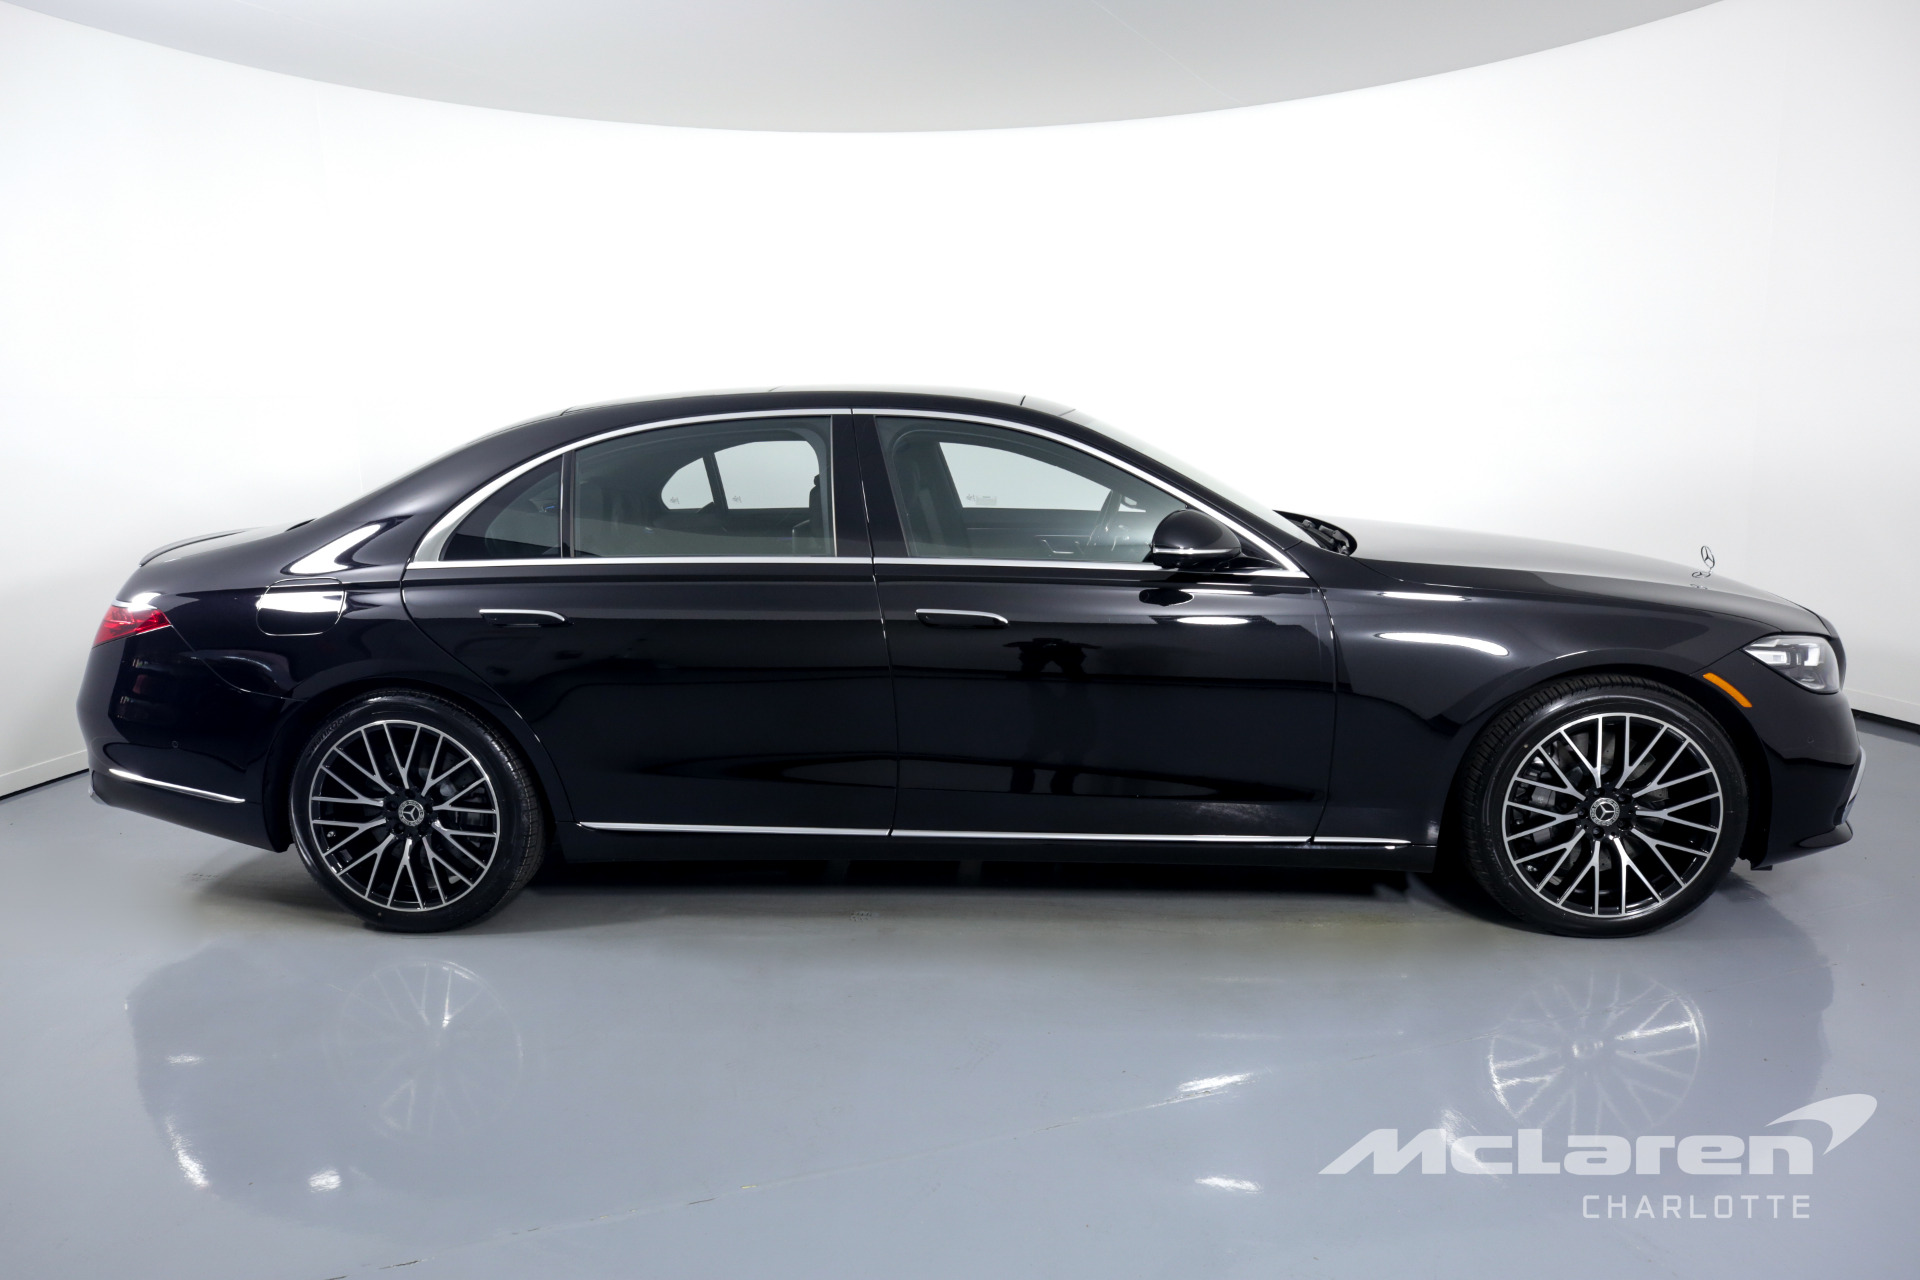 Used 2021 Mercedes-Benz S-Class S 580 4MATIC | Charlotte, NC